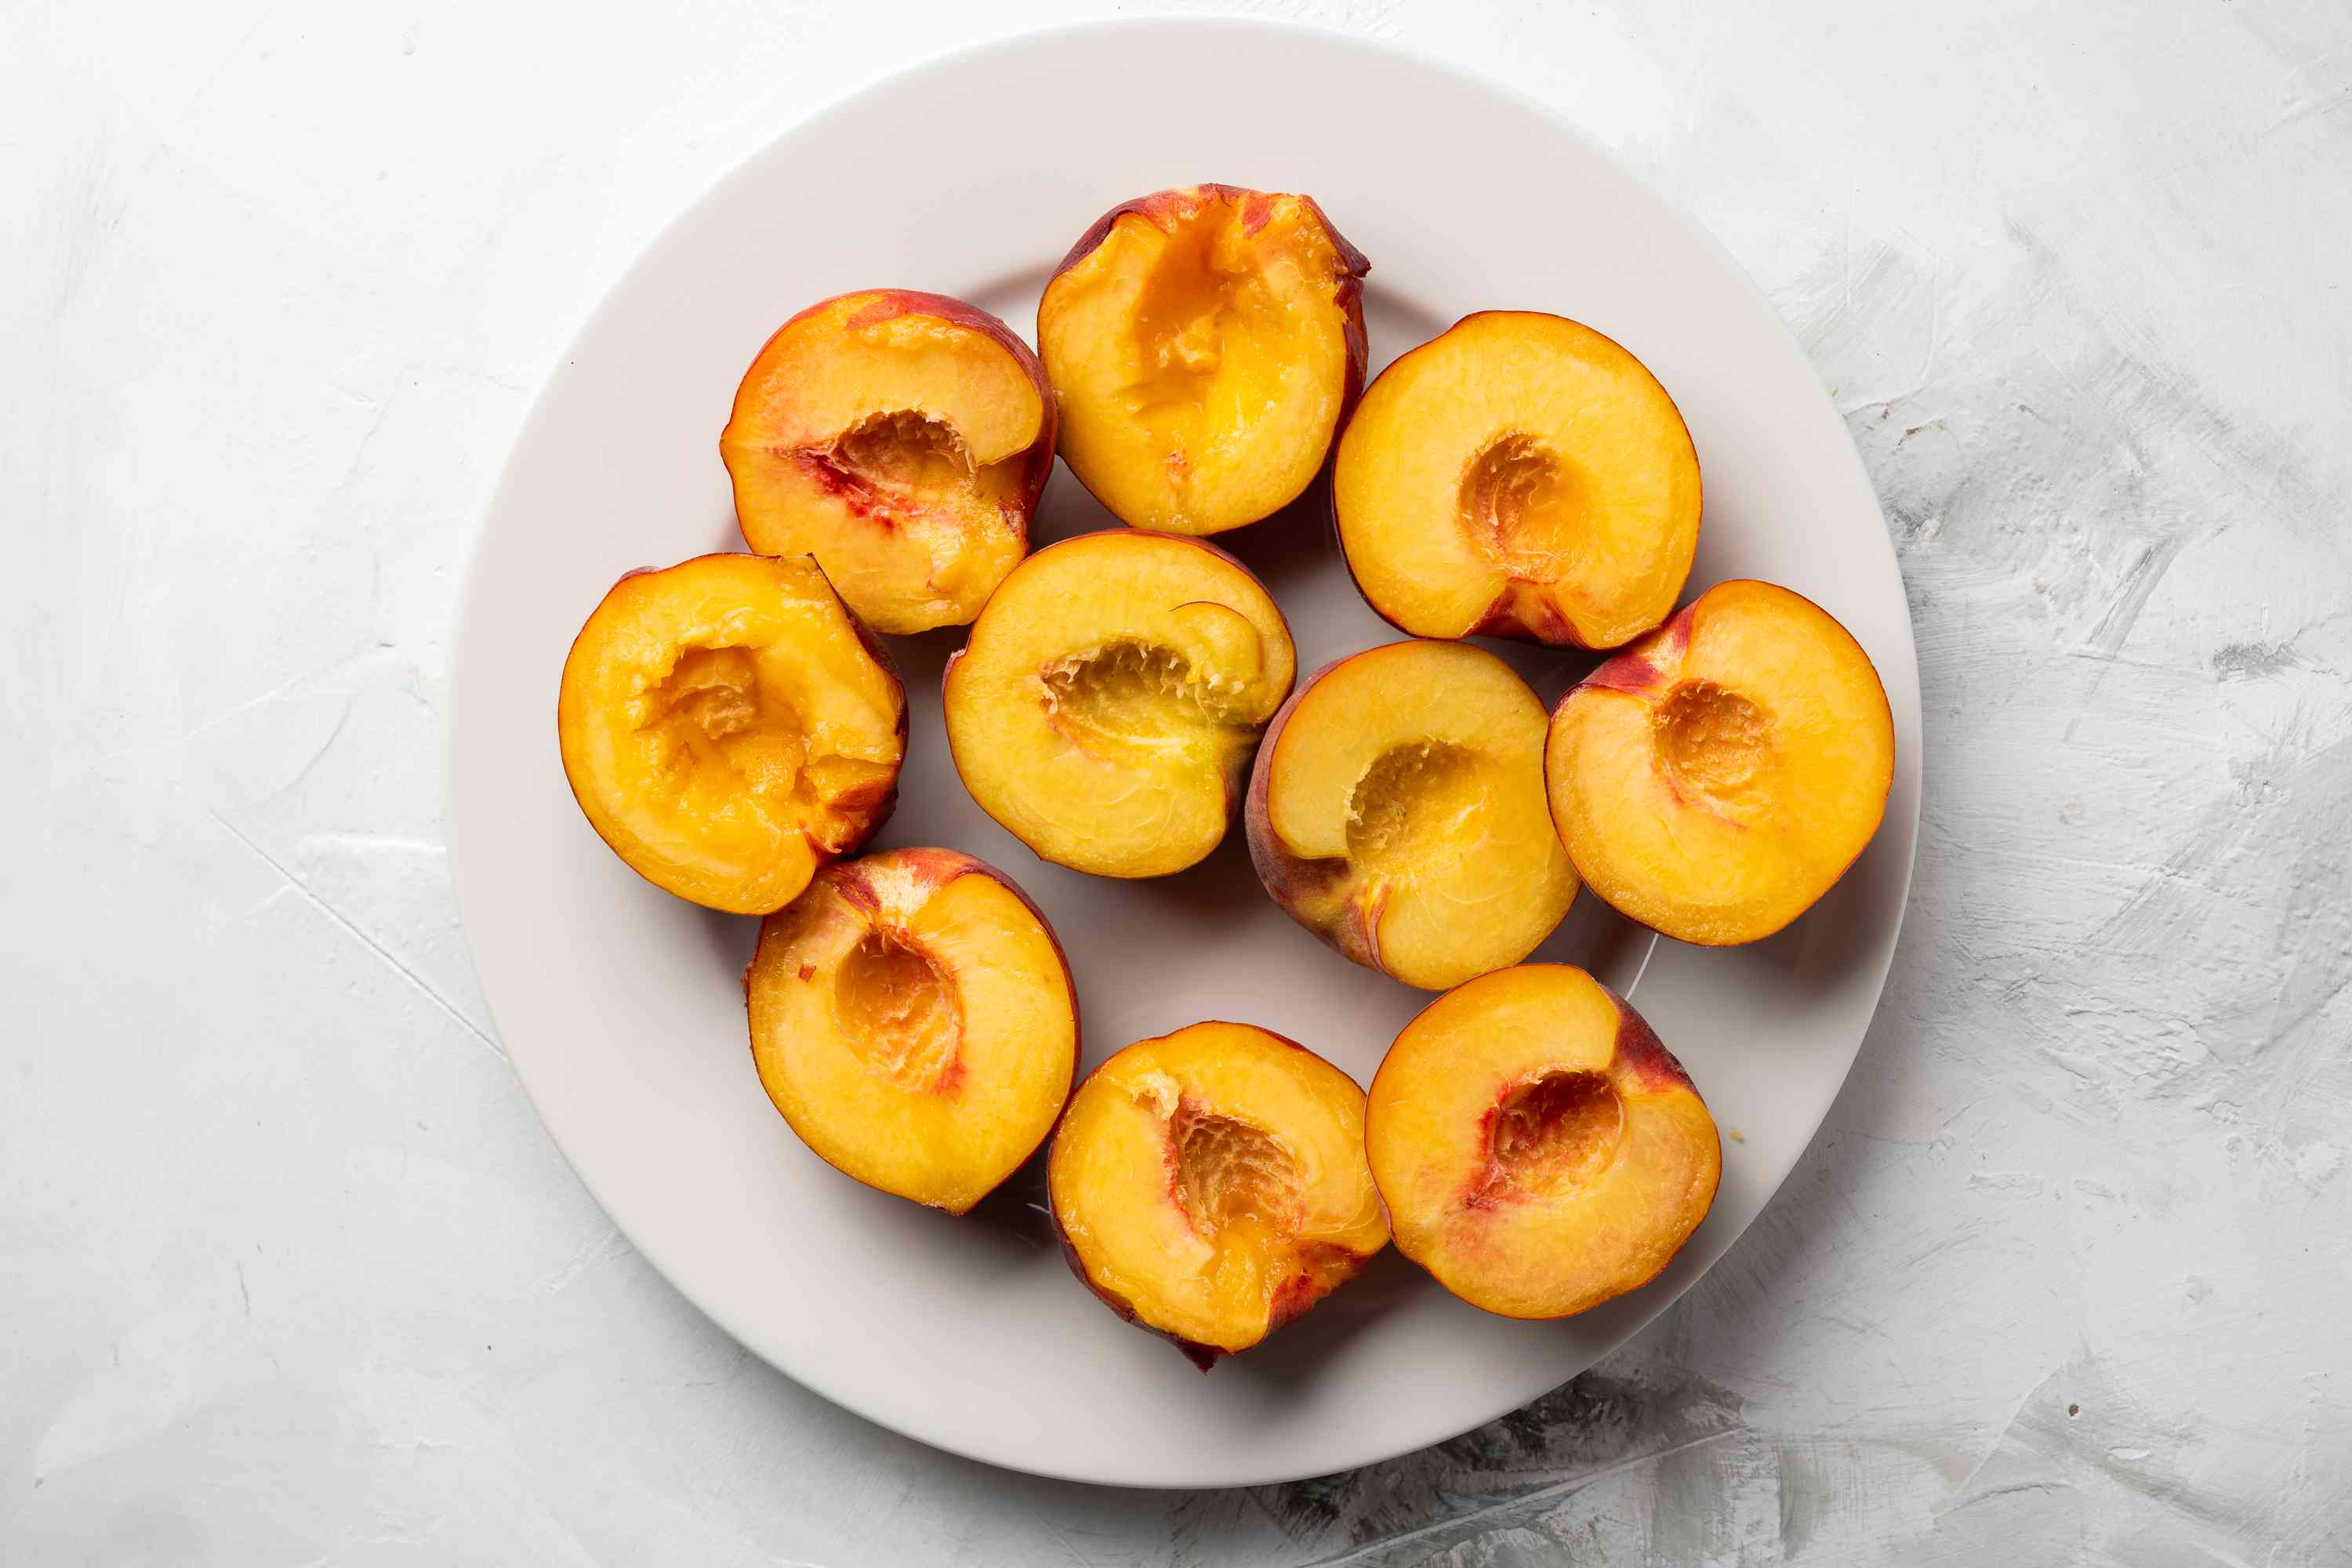 Cut the peaches in half and pit them